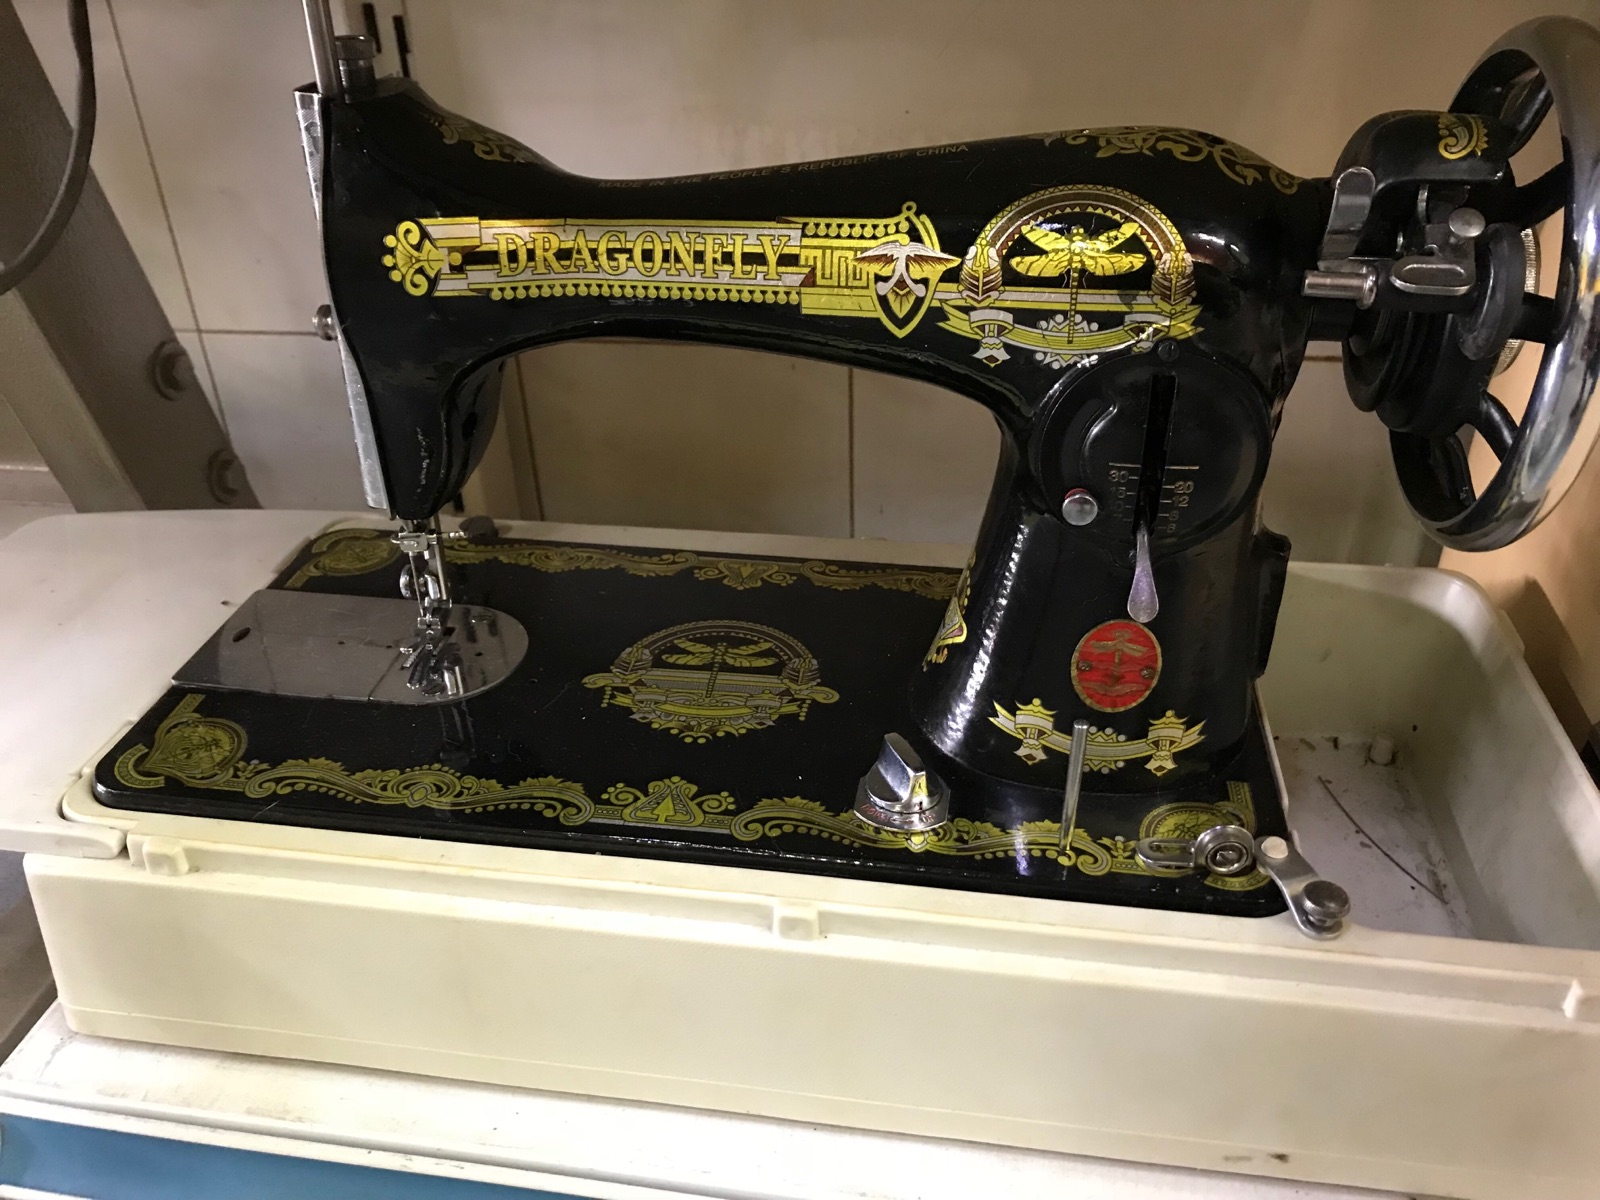 Dragonfly Anti Sewing Machine